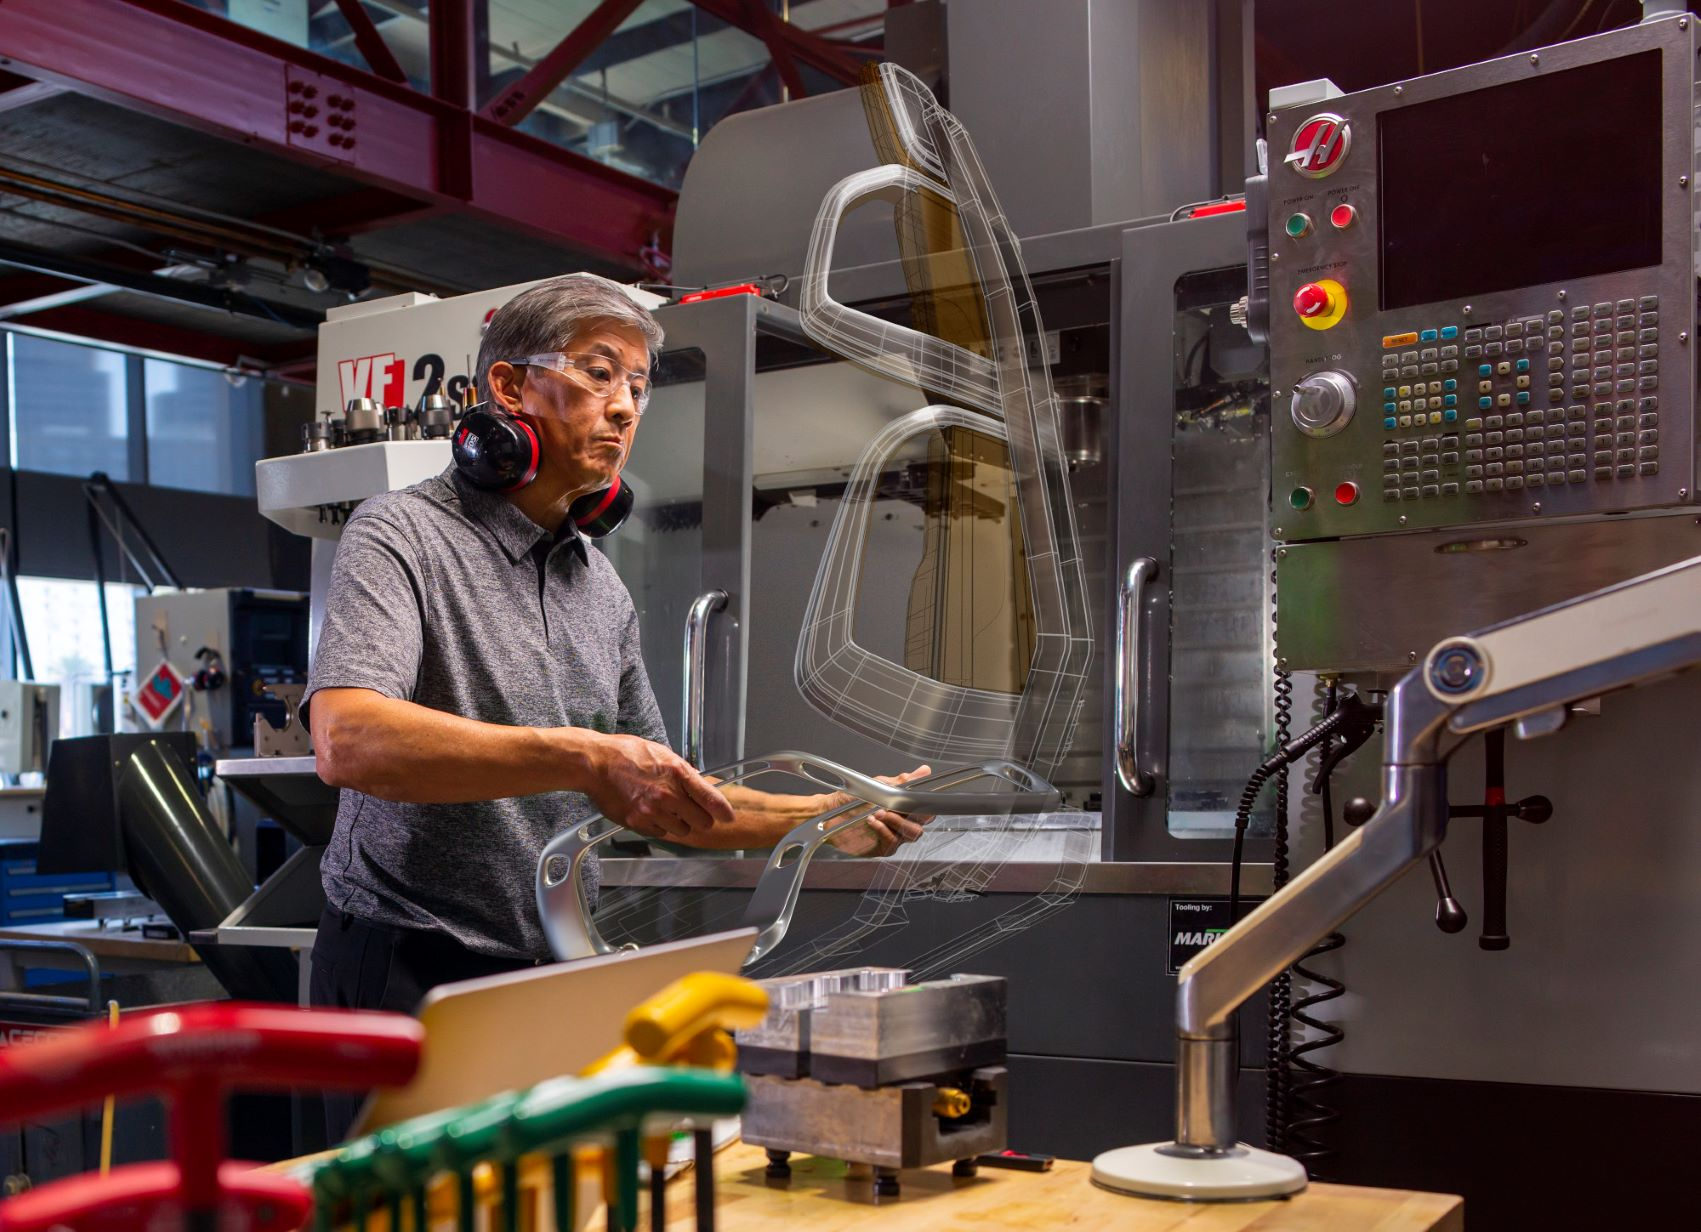 Man working with CNC machinery at the Autodesk San Francisco Technology Center.